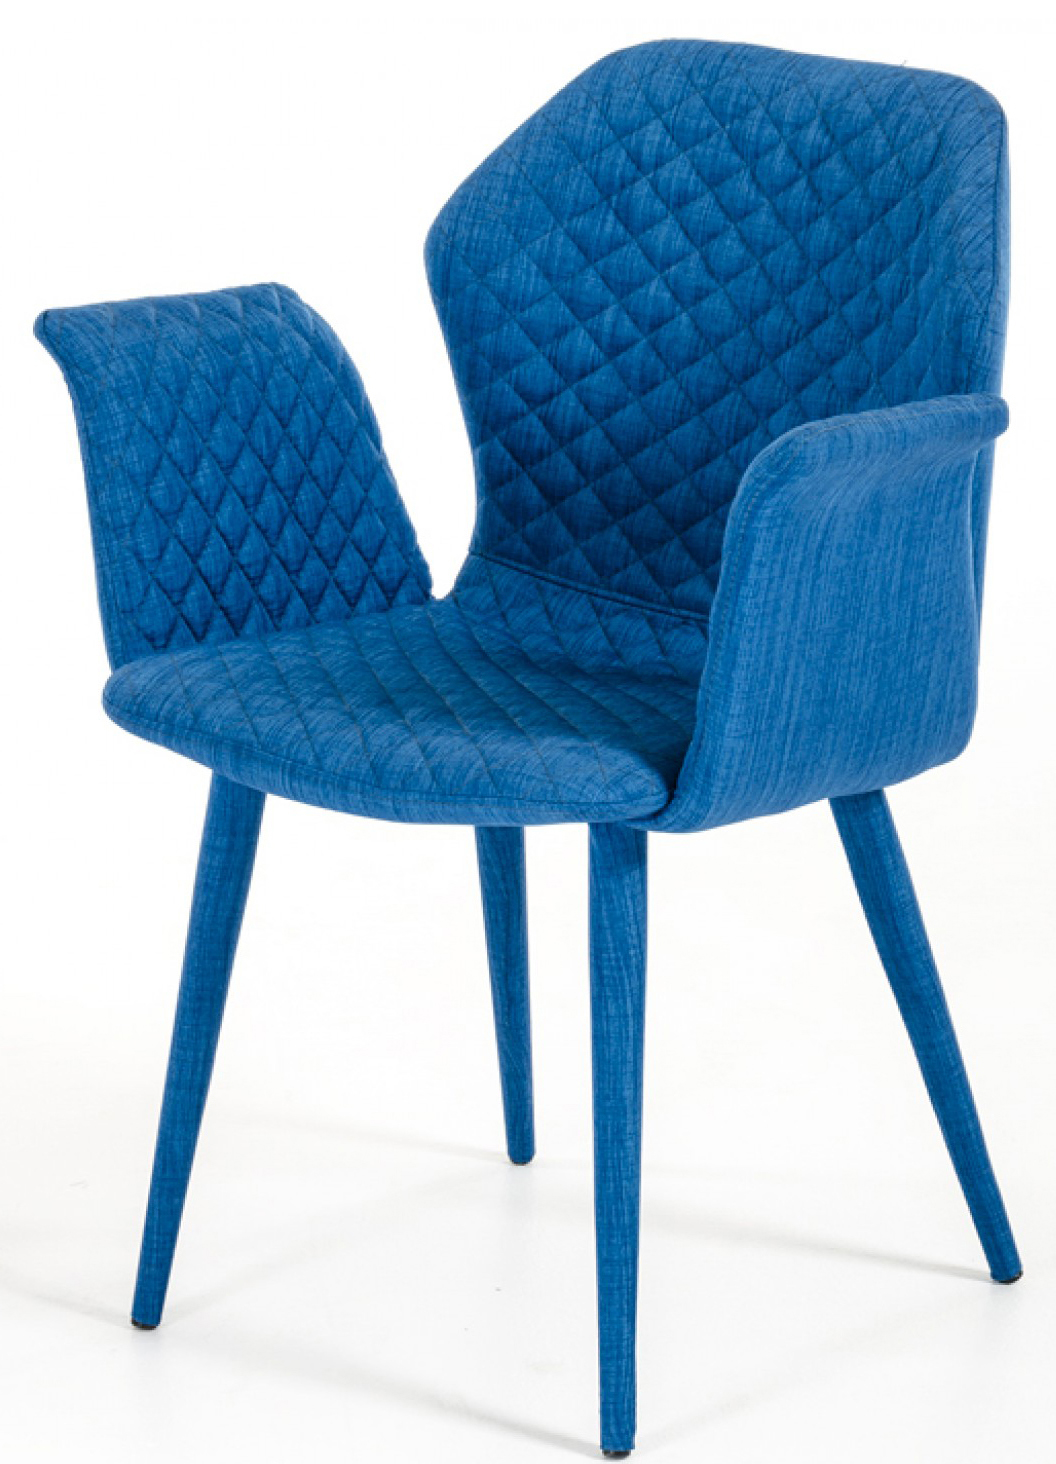 The Adamo Blue Upholstered Dining Chair is available at AdvancedInteriorDesigns.com